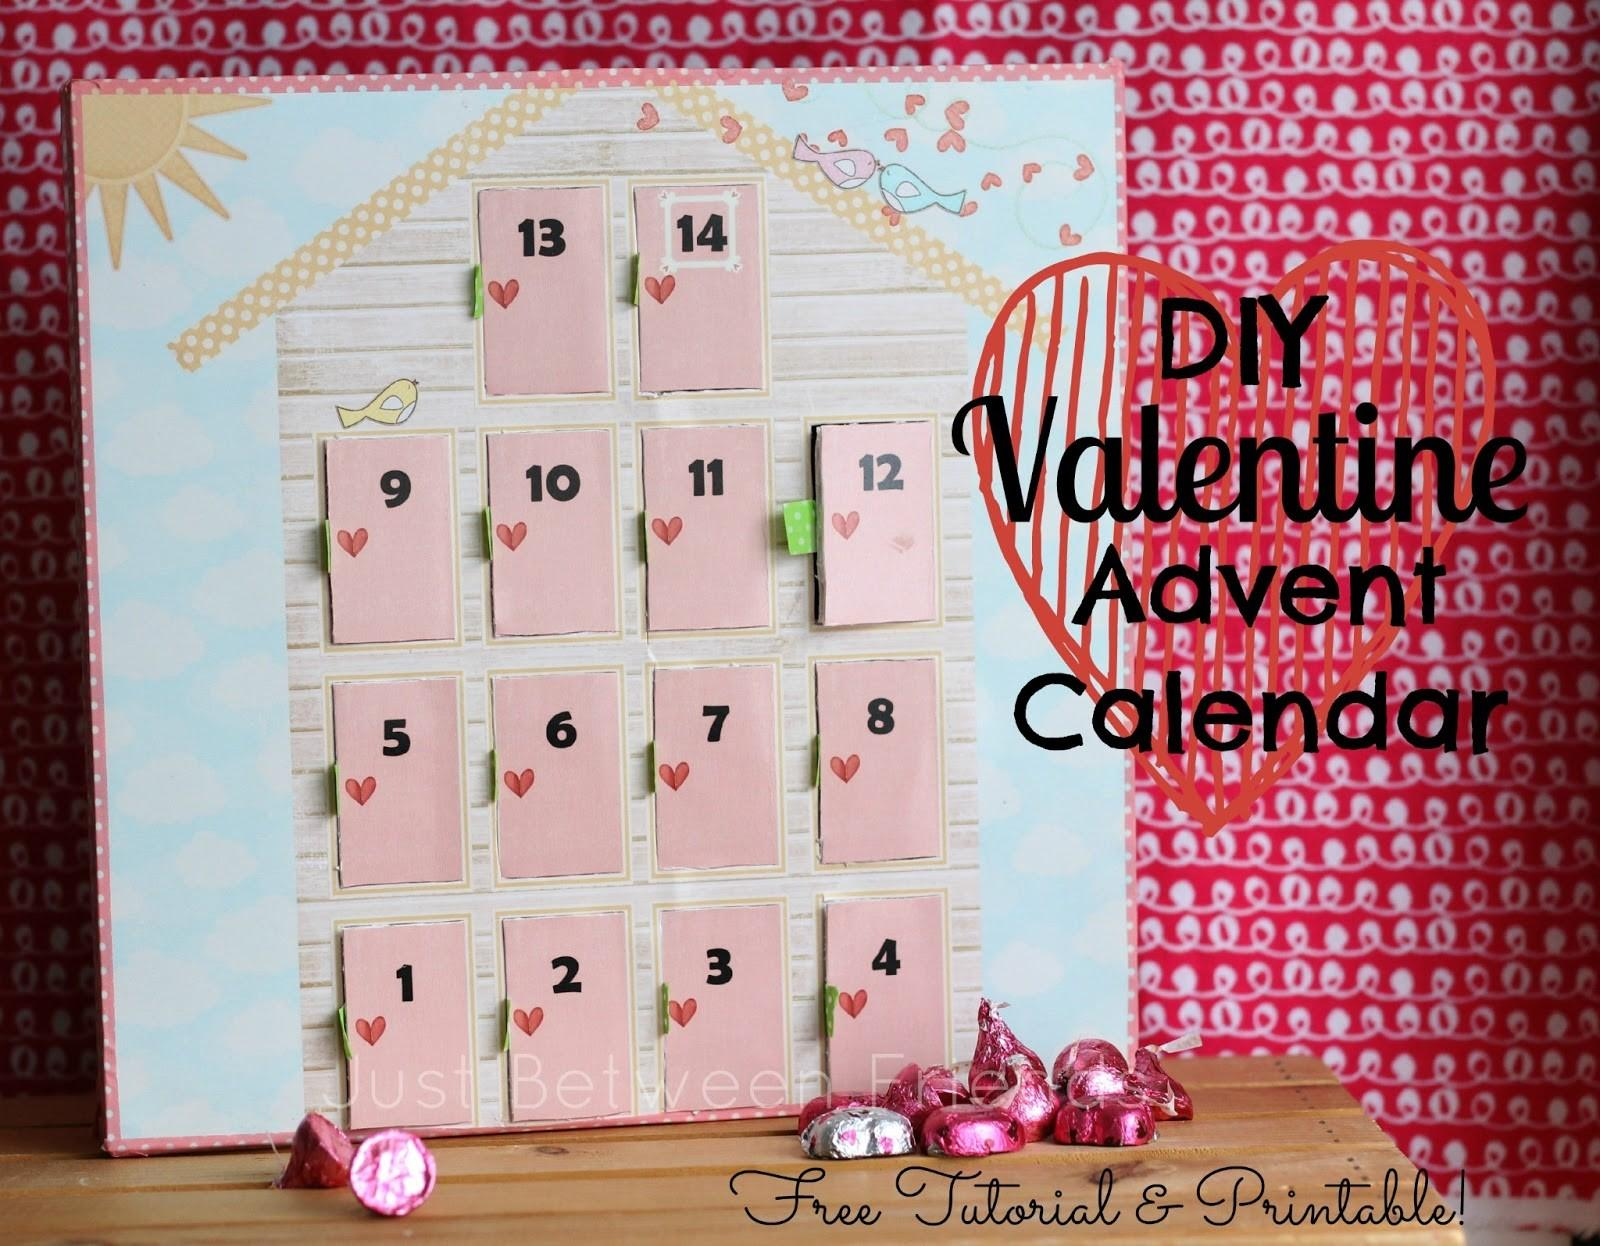 Diy Valentines Advent Calendar Just Between Friends